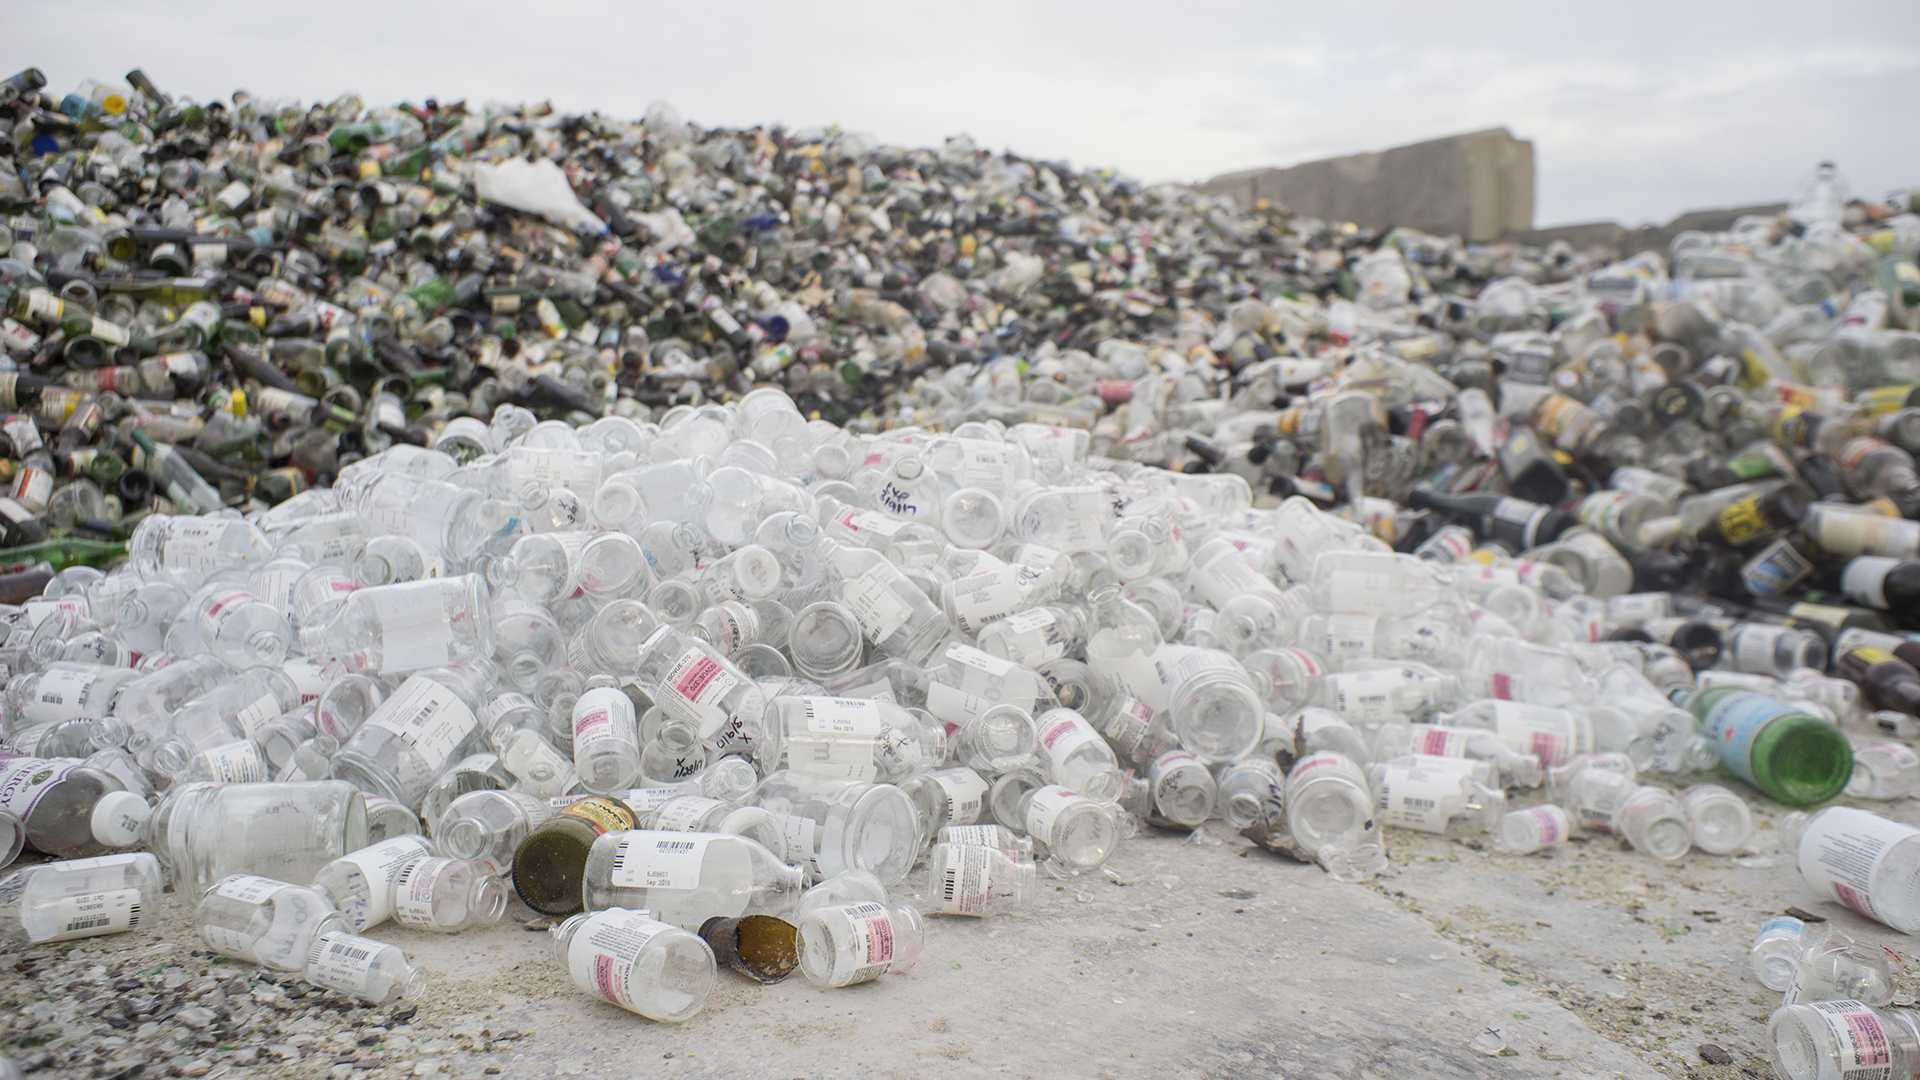 Thousands of cans and bottles are seen at City Carton Recycling on Thursday, March 23, 2017. HF 575, which has been coined the